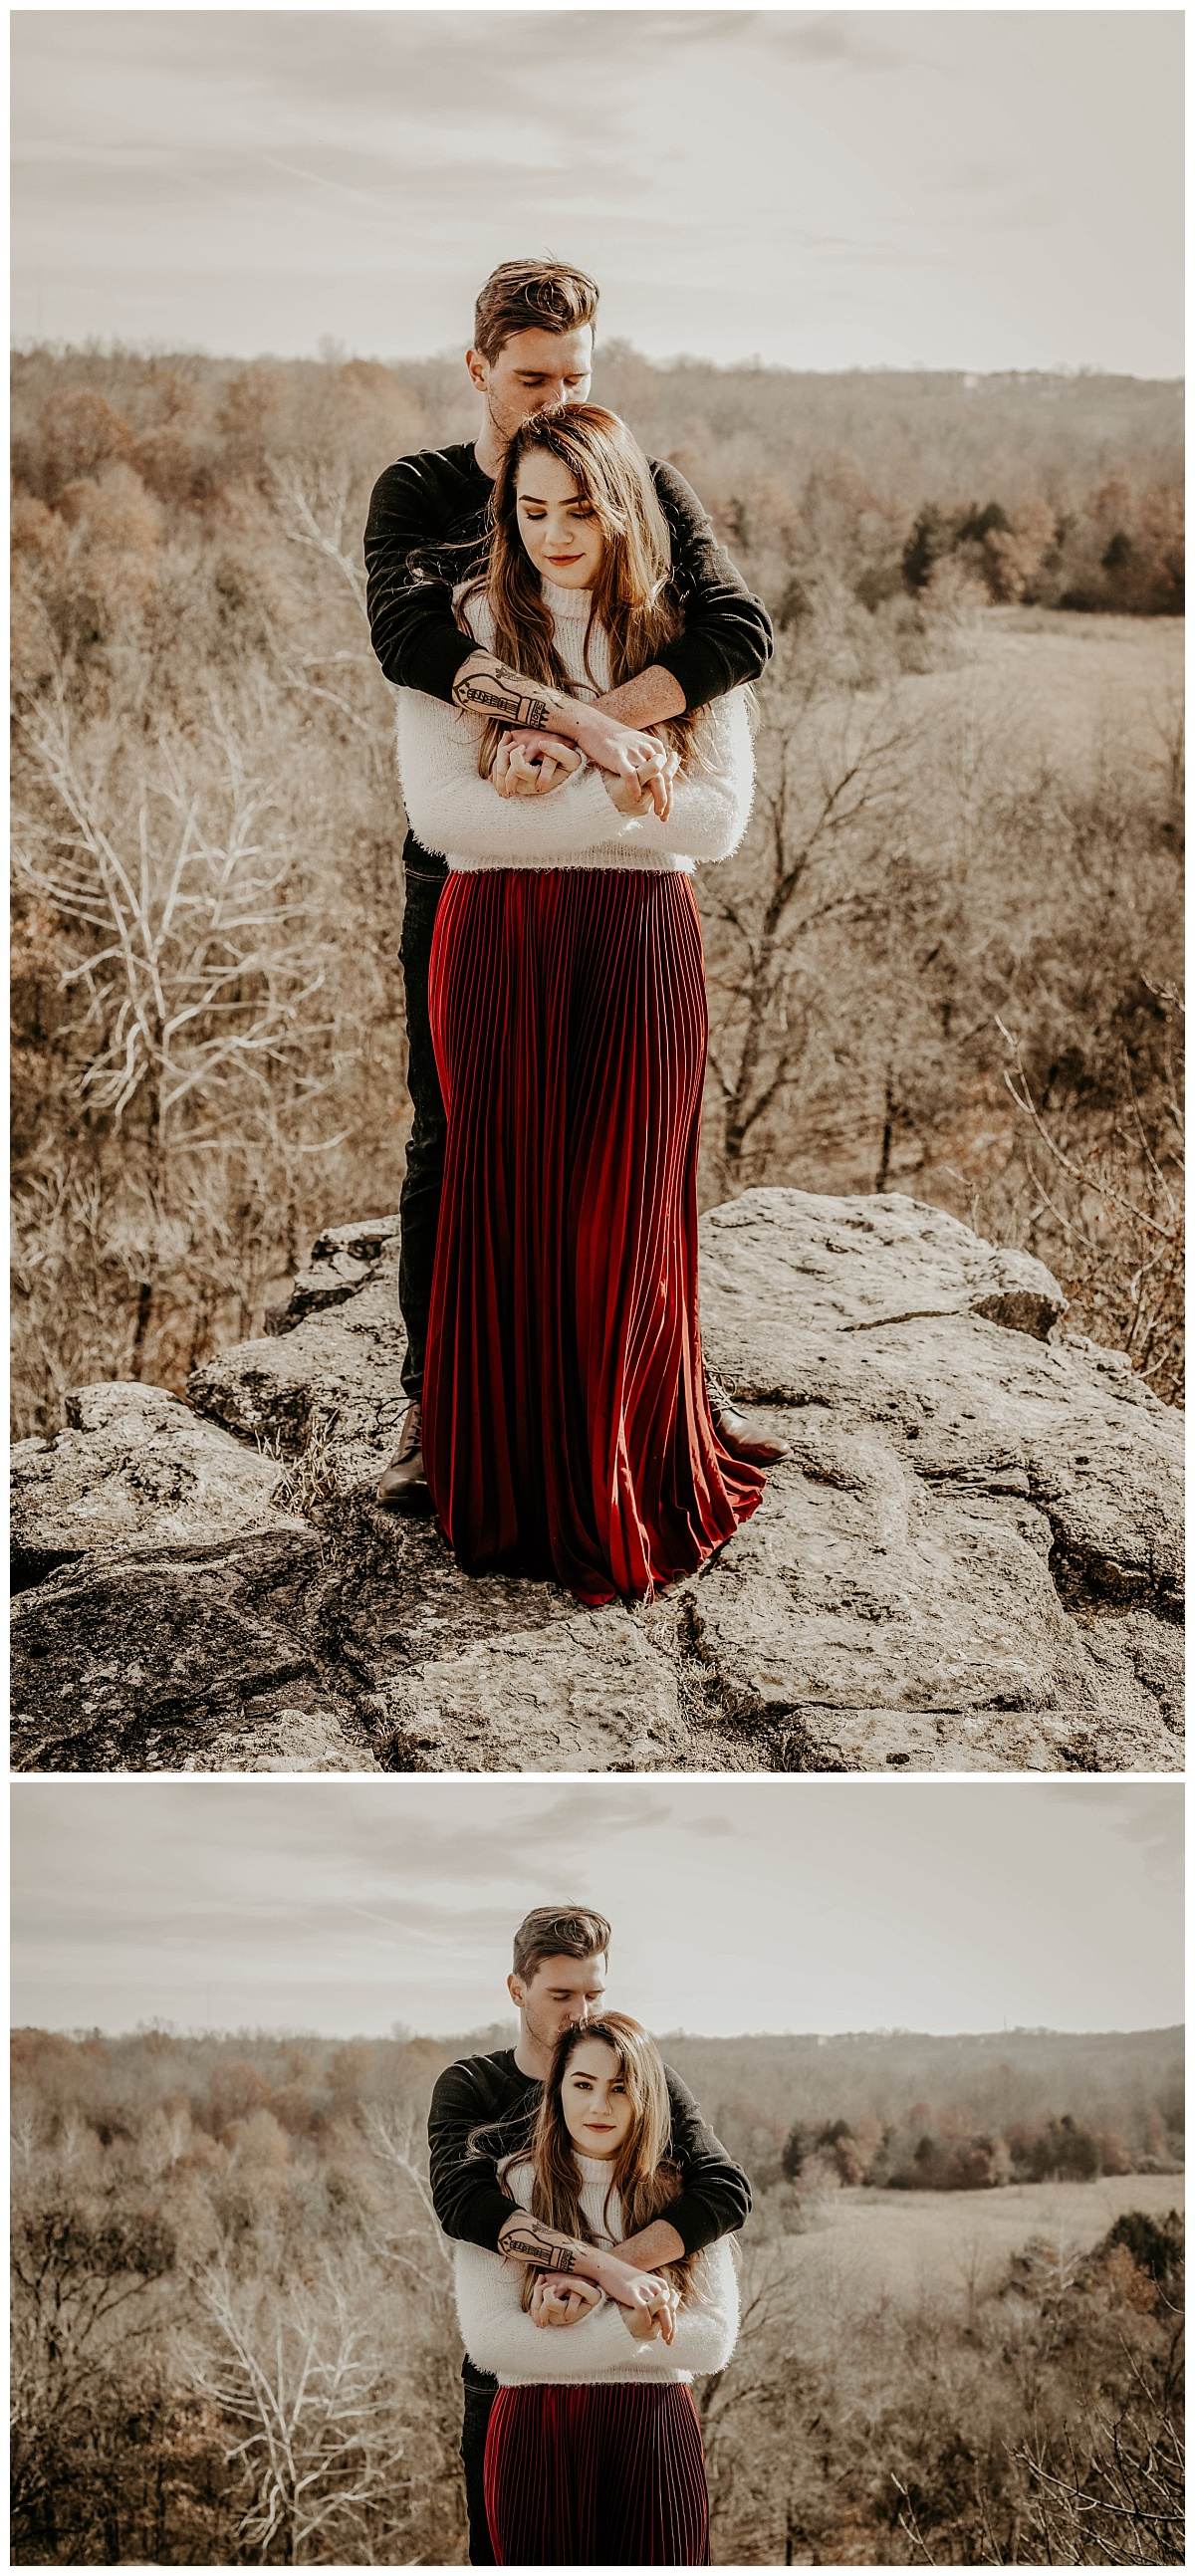 Couples Adventure Session | Mountain Couples Photos | Kansas City Engagement Photography Kansas City Wedding Photography